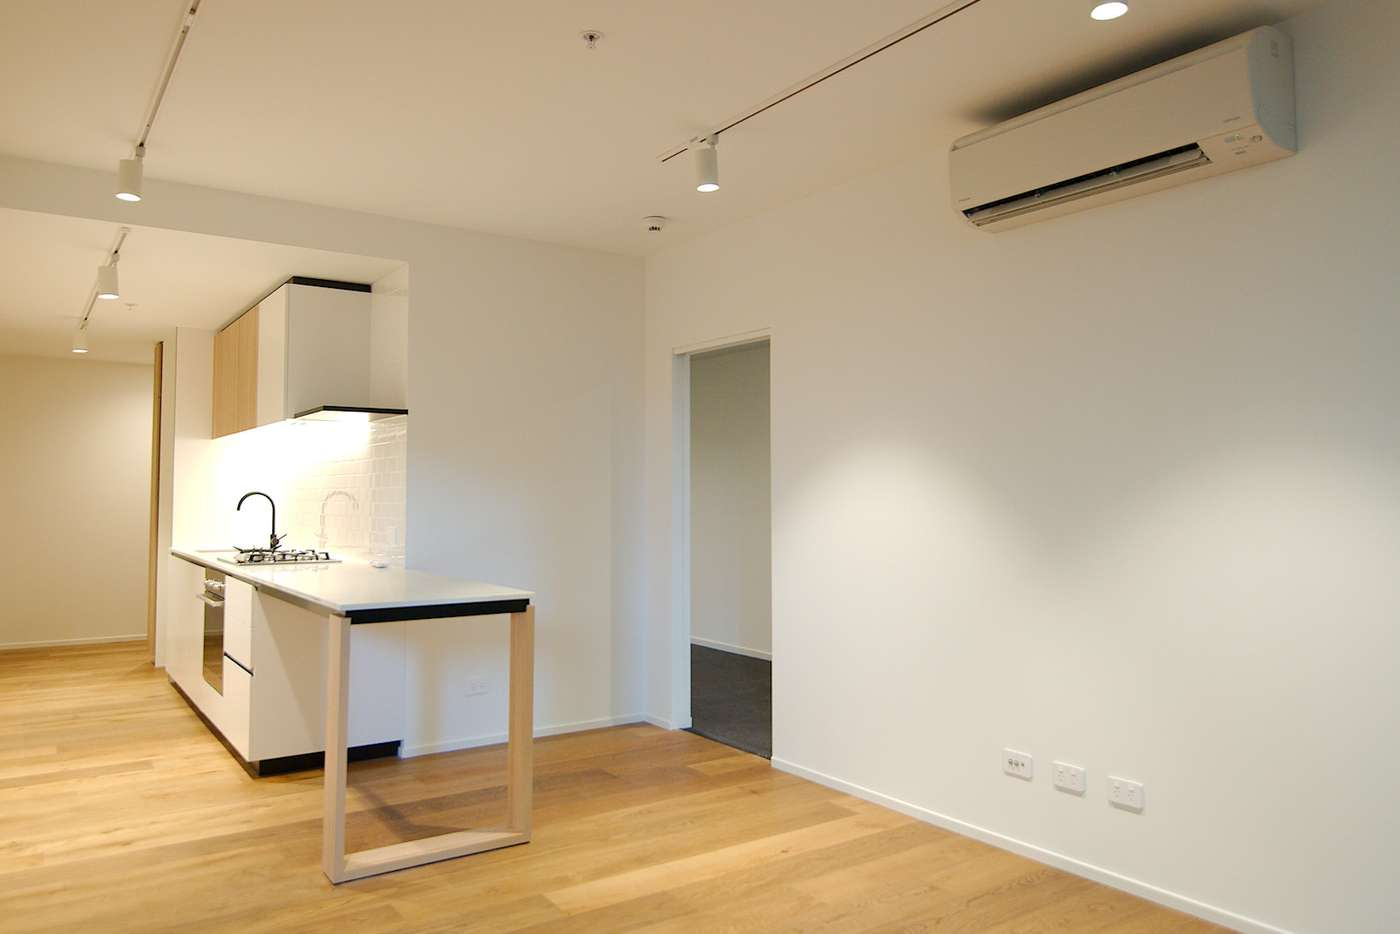 Main view of Homely apartment listing, 10/121 Rosslyn Street, West Melbourne VIC 3003